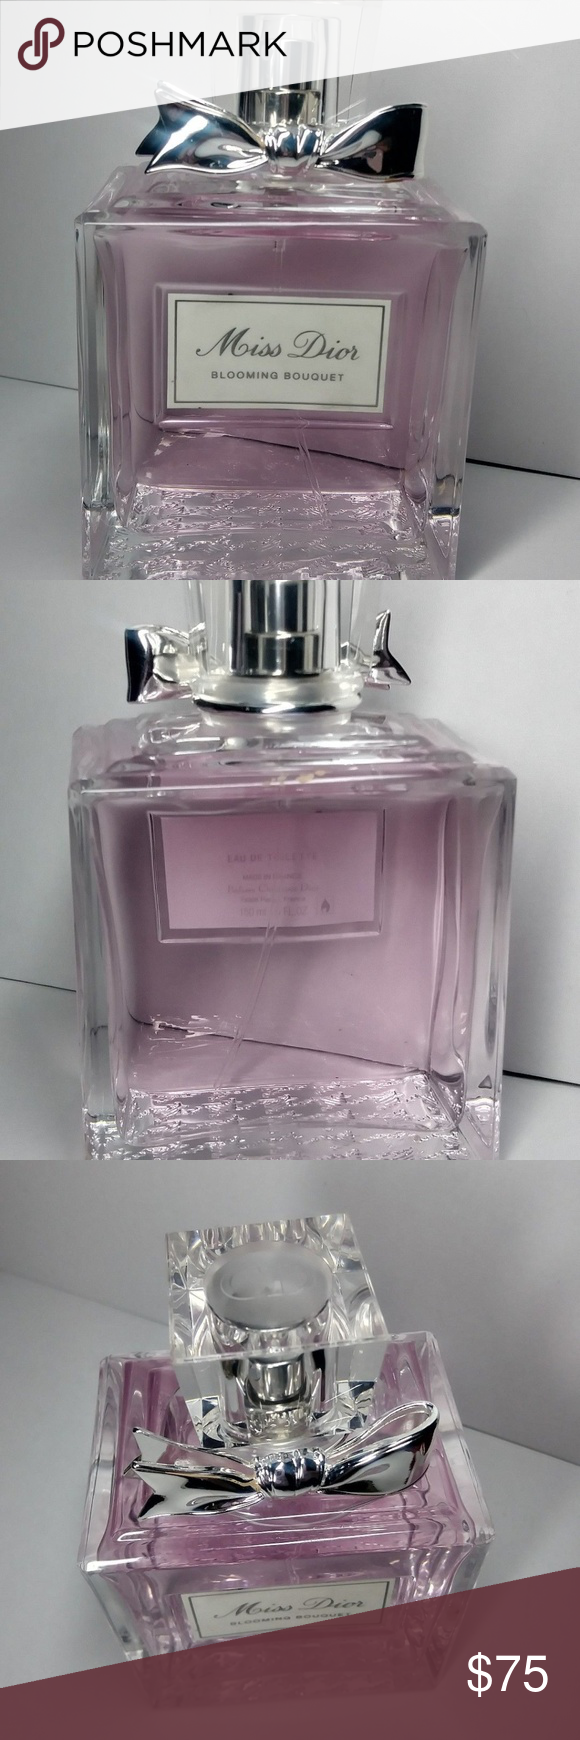 b0e69652f4 AUTHENTIC CHRISTIAN DIOR MISS DIOR BLOOMING BOUQUE AUTHENTIC ...